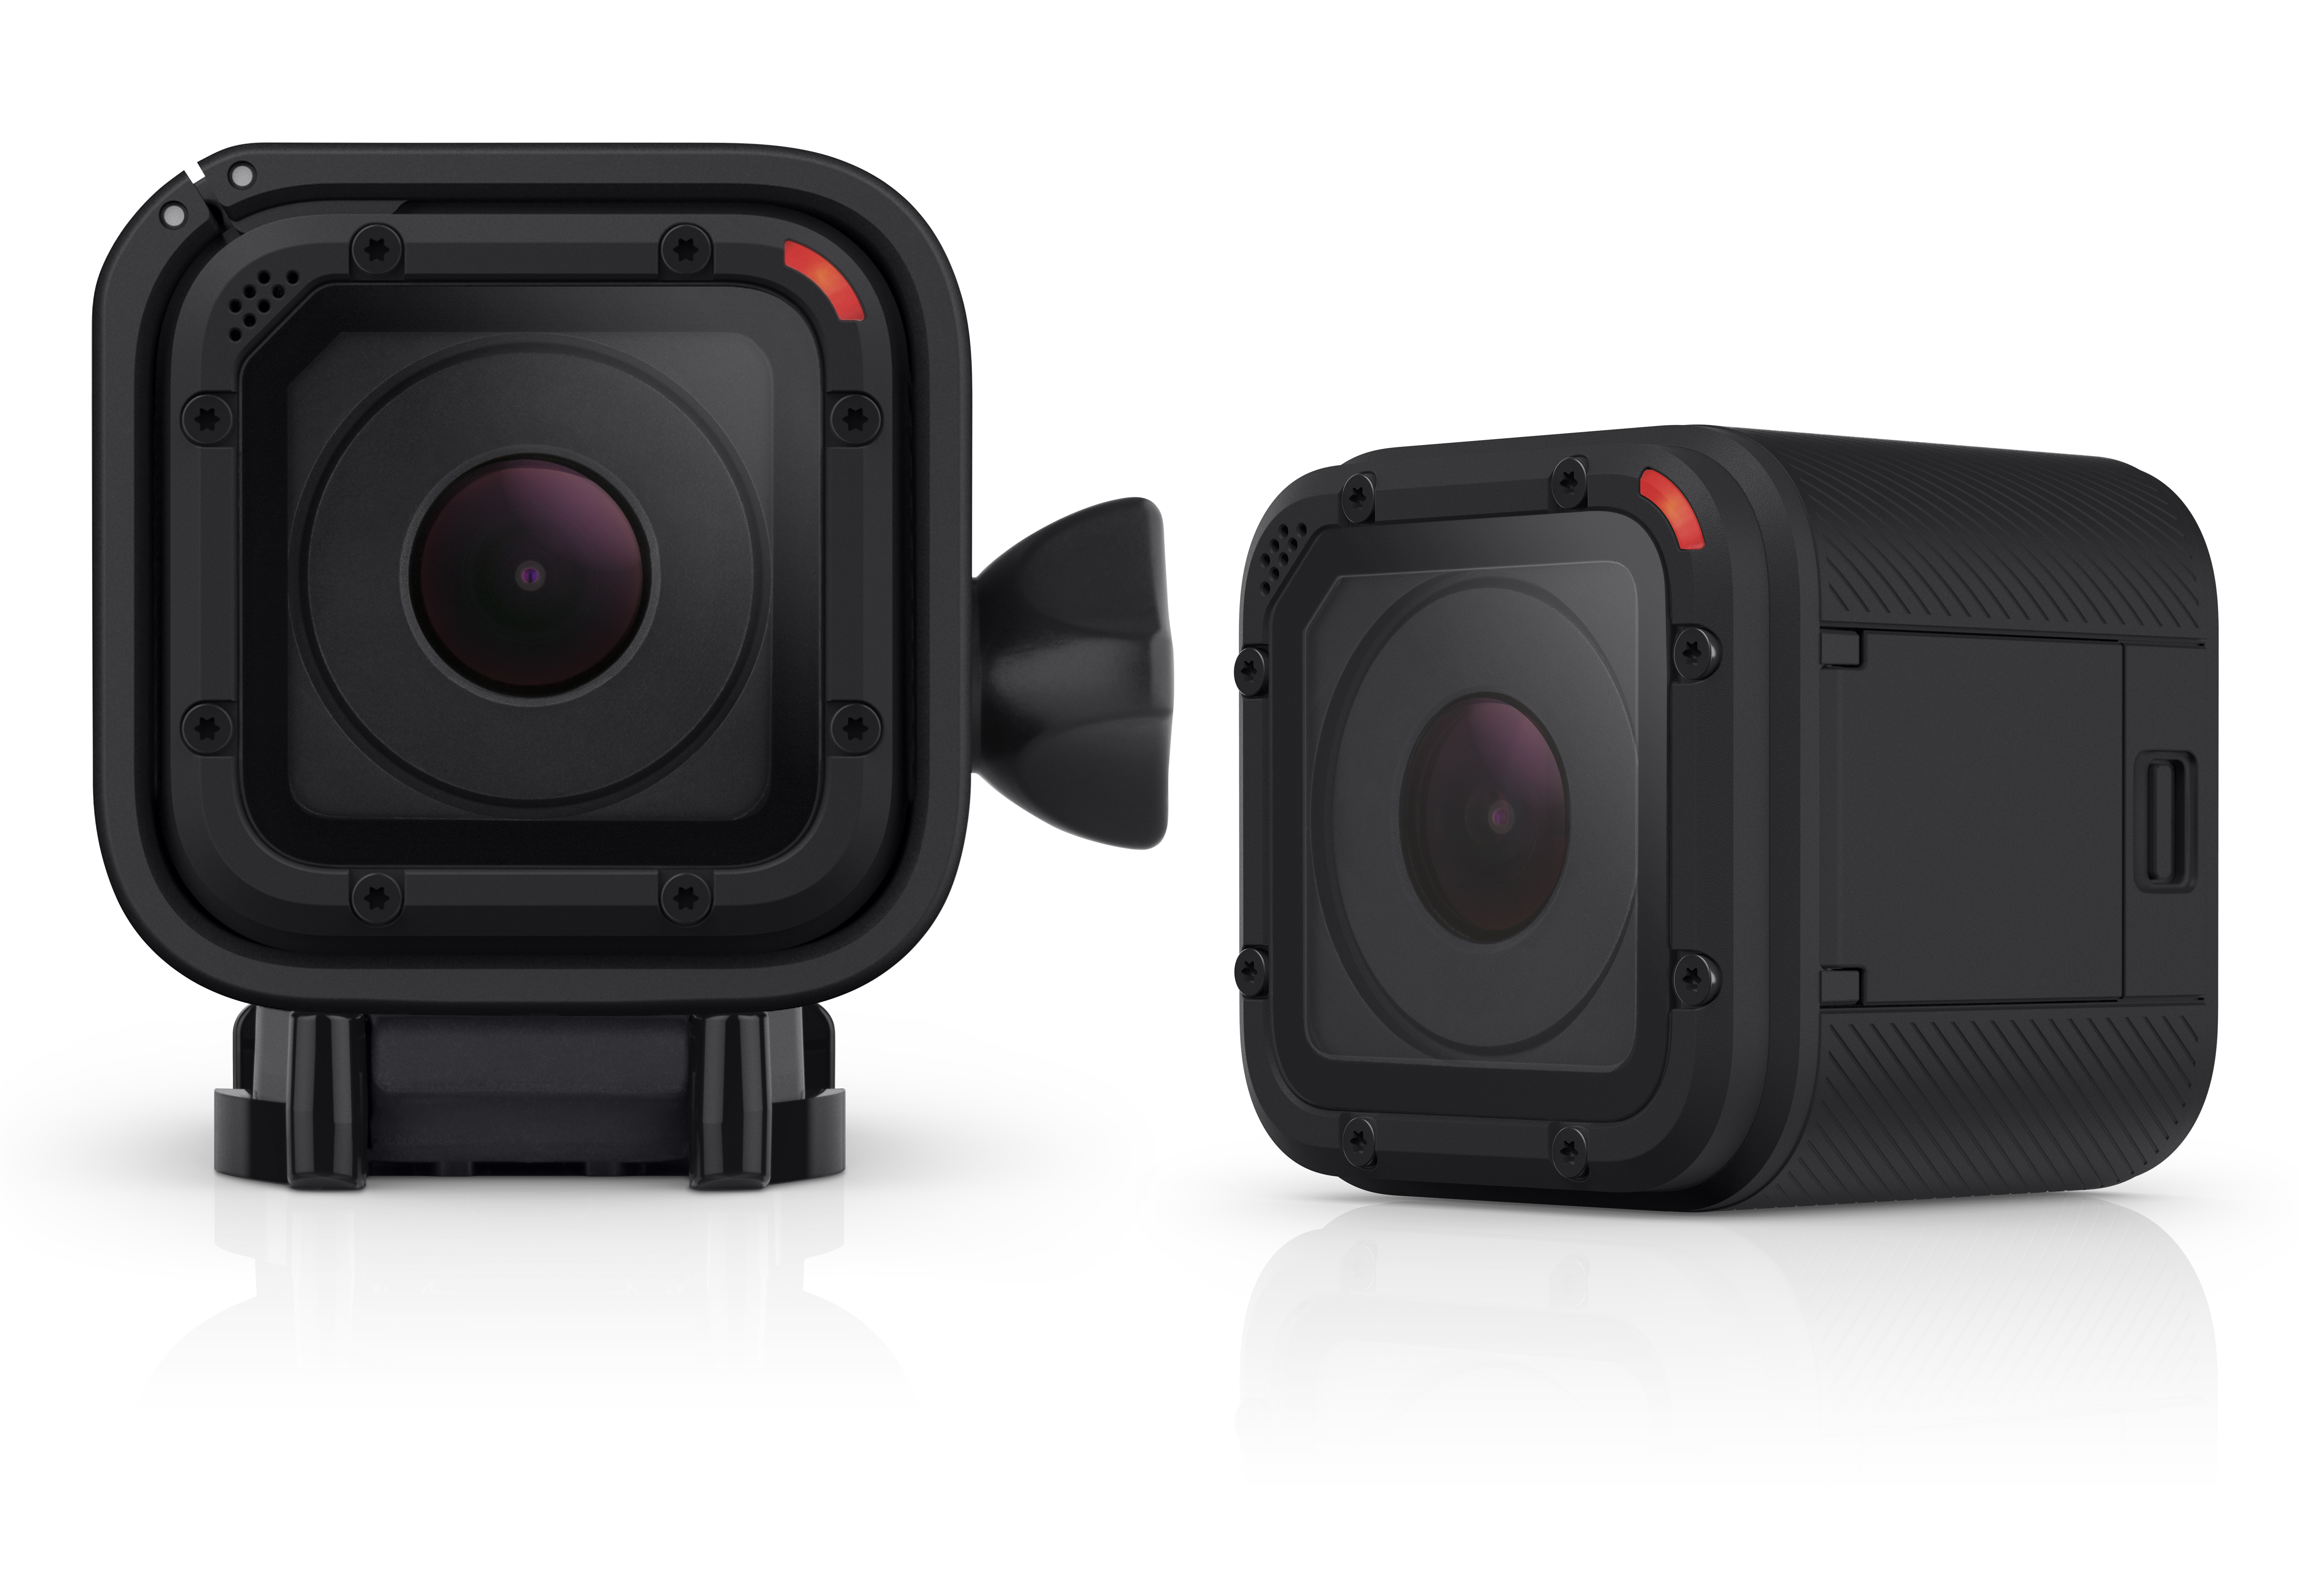 The Go Pro Hero 4 Session: Sleek, Spartan And Strong